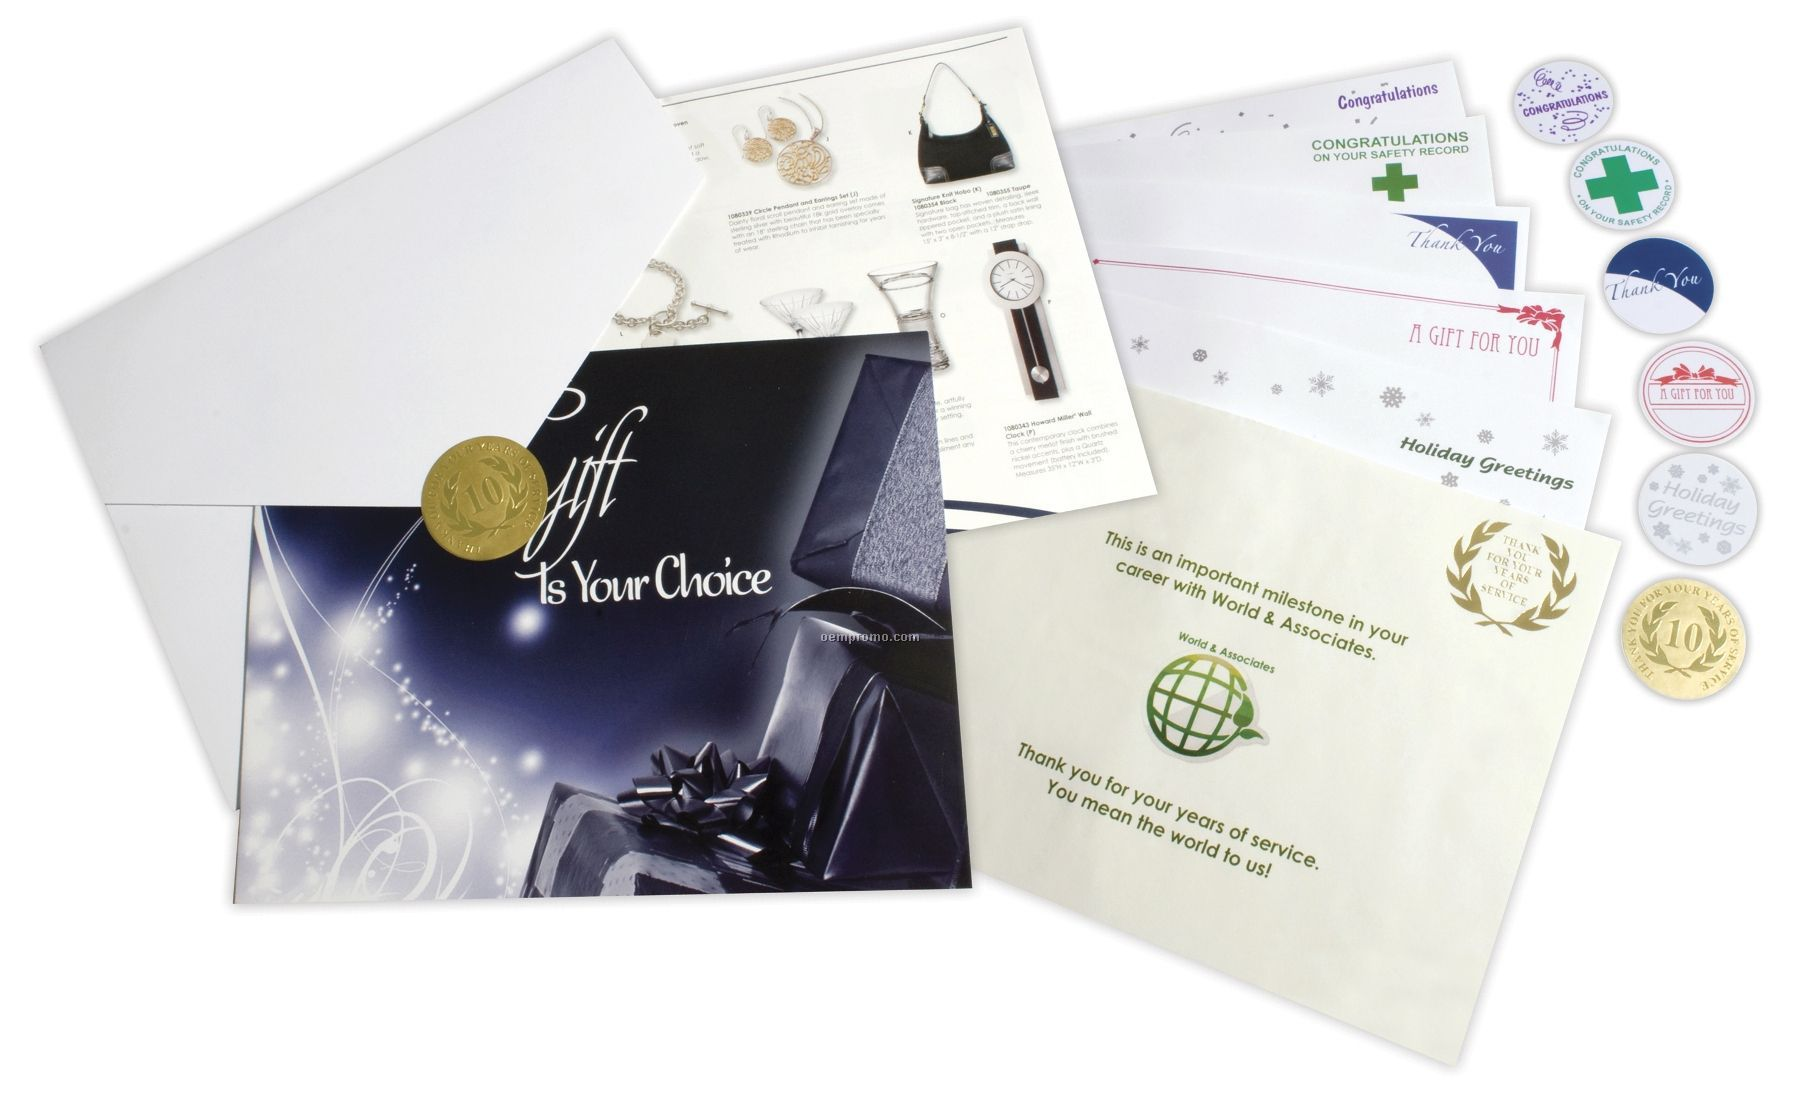 $500 Gift Of Choice (Silver Level) Gift Booklet